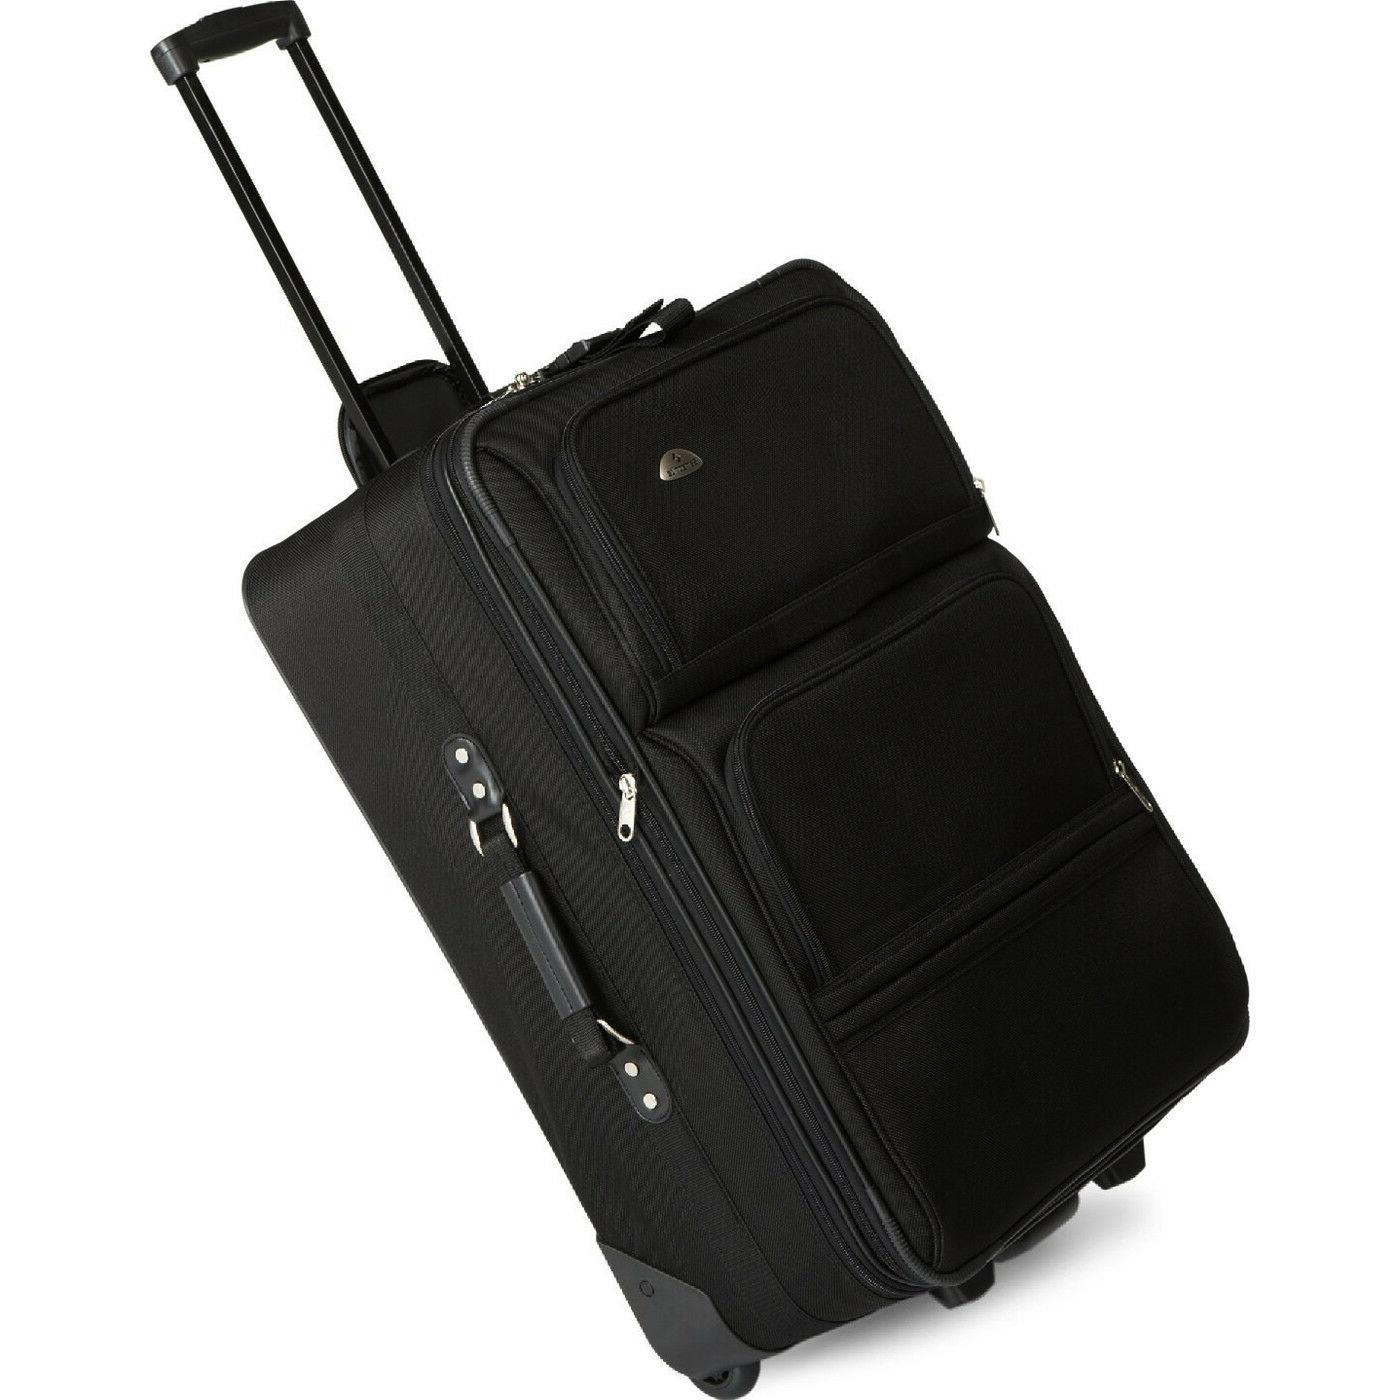 Samsonite 5 Piece Luggage Suitcase Set 25 20 & More